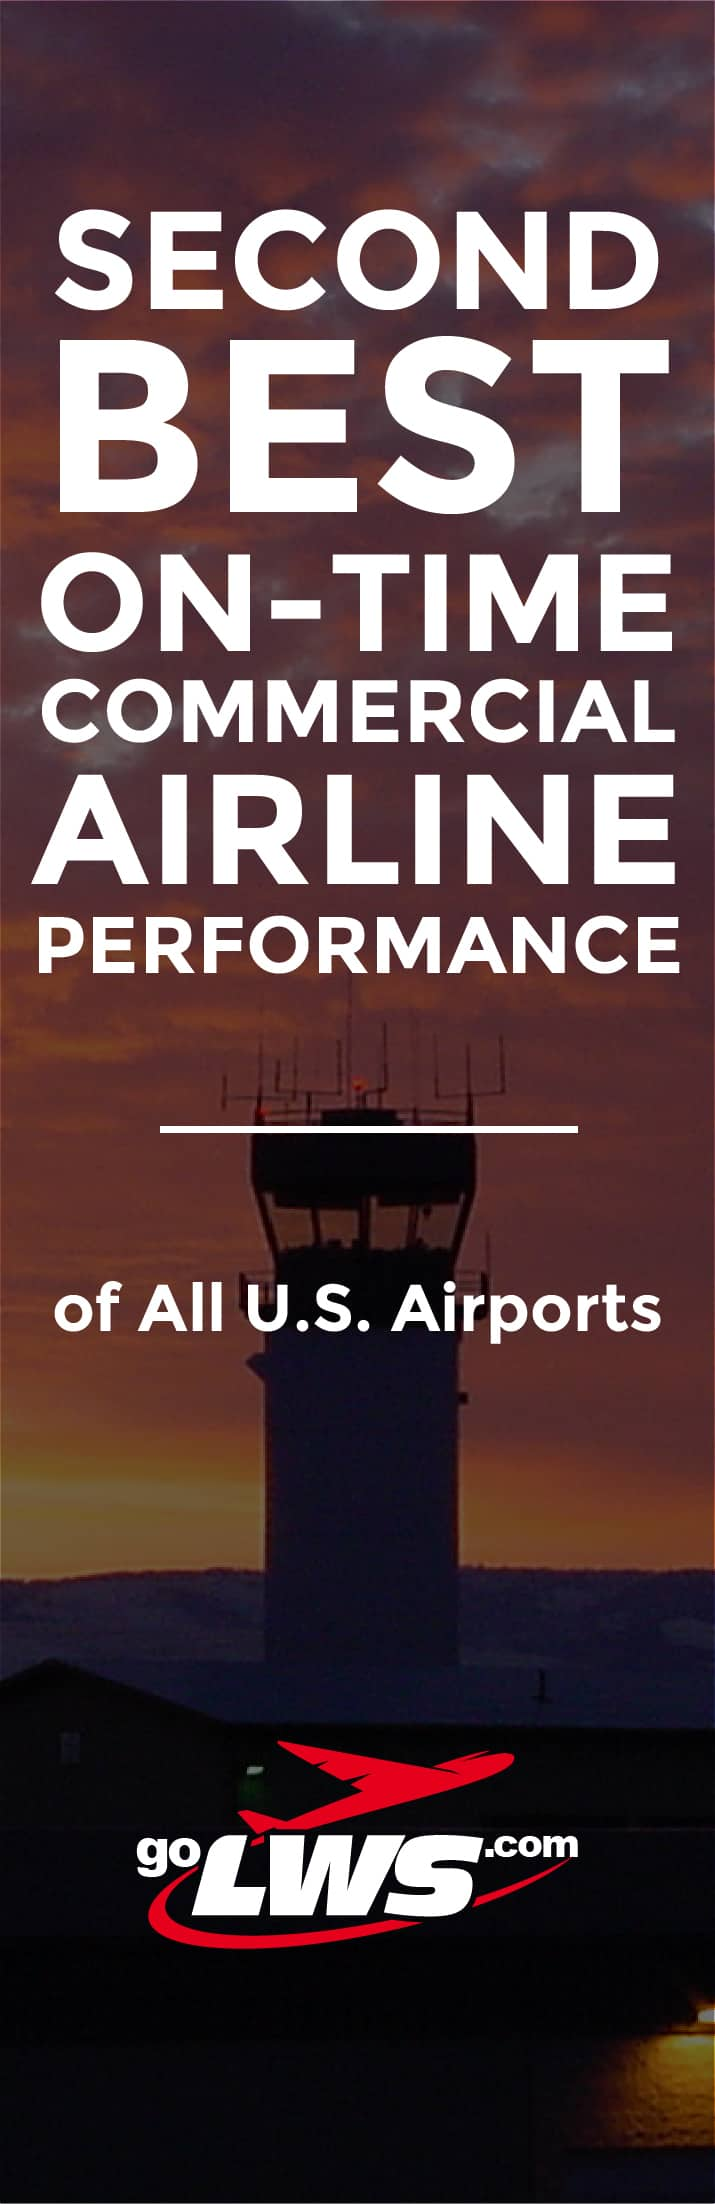 Airport-2017-graphics-large-13